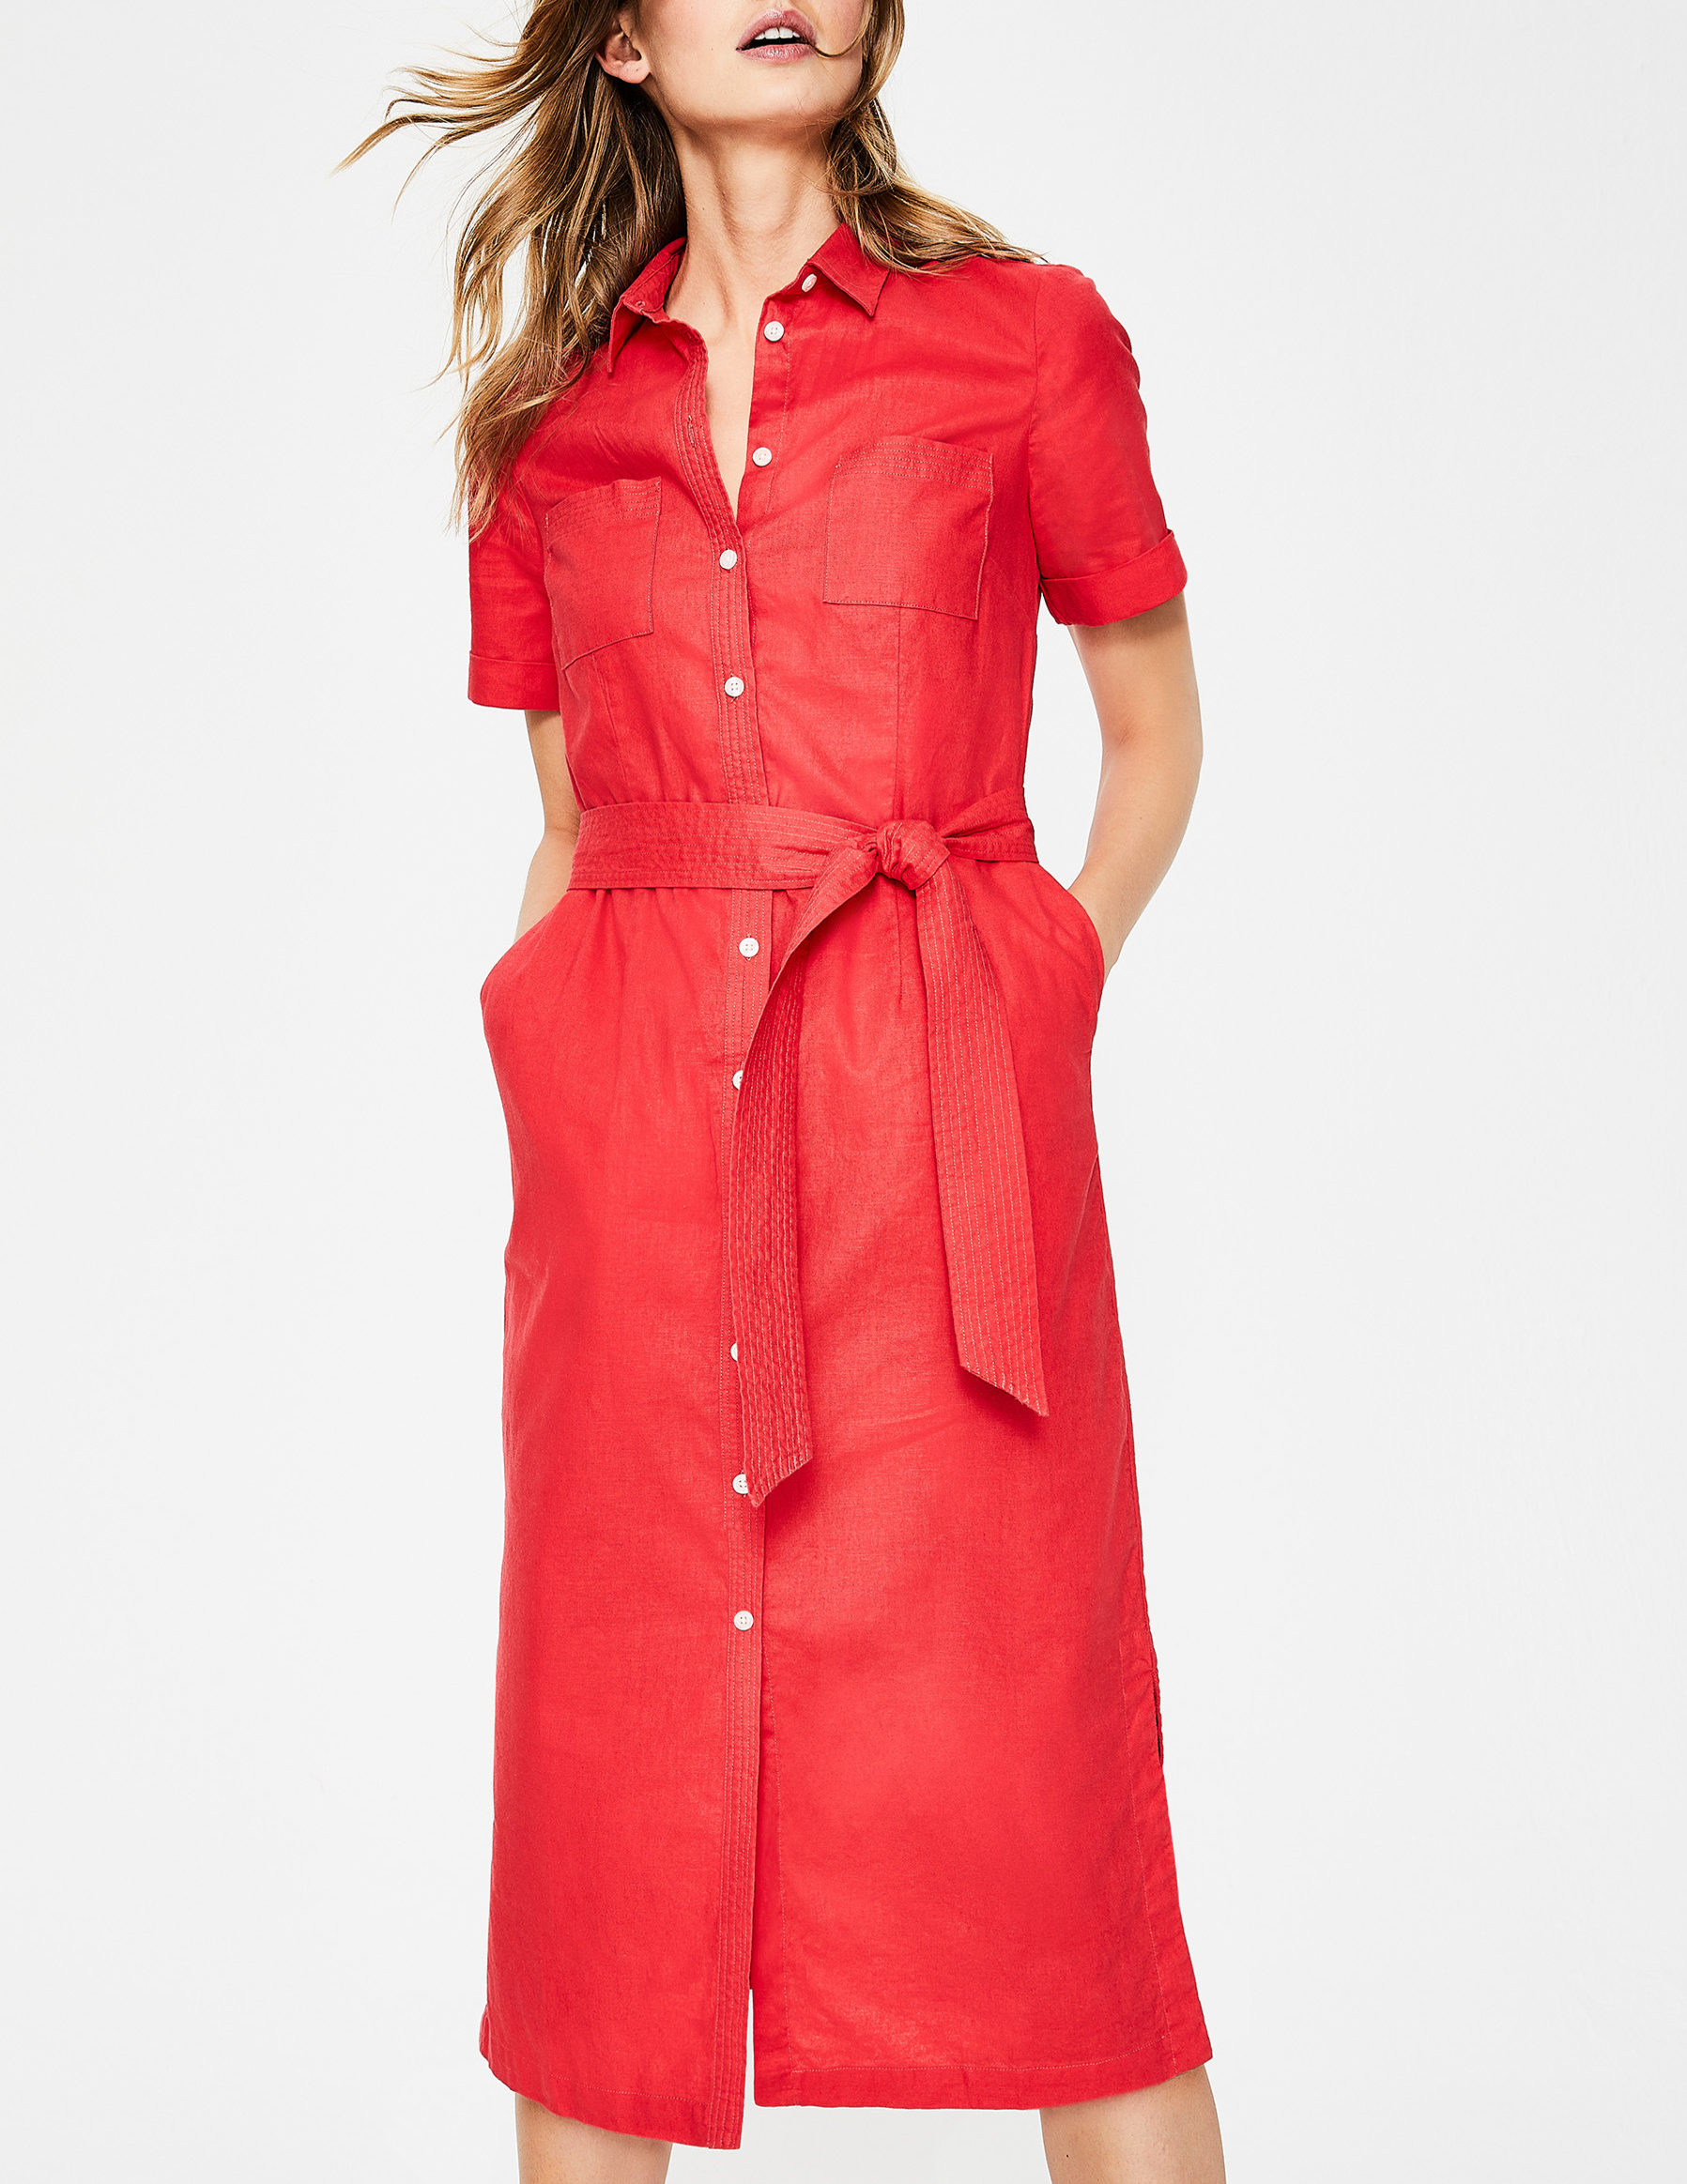 boden shirtdress